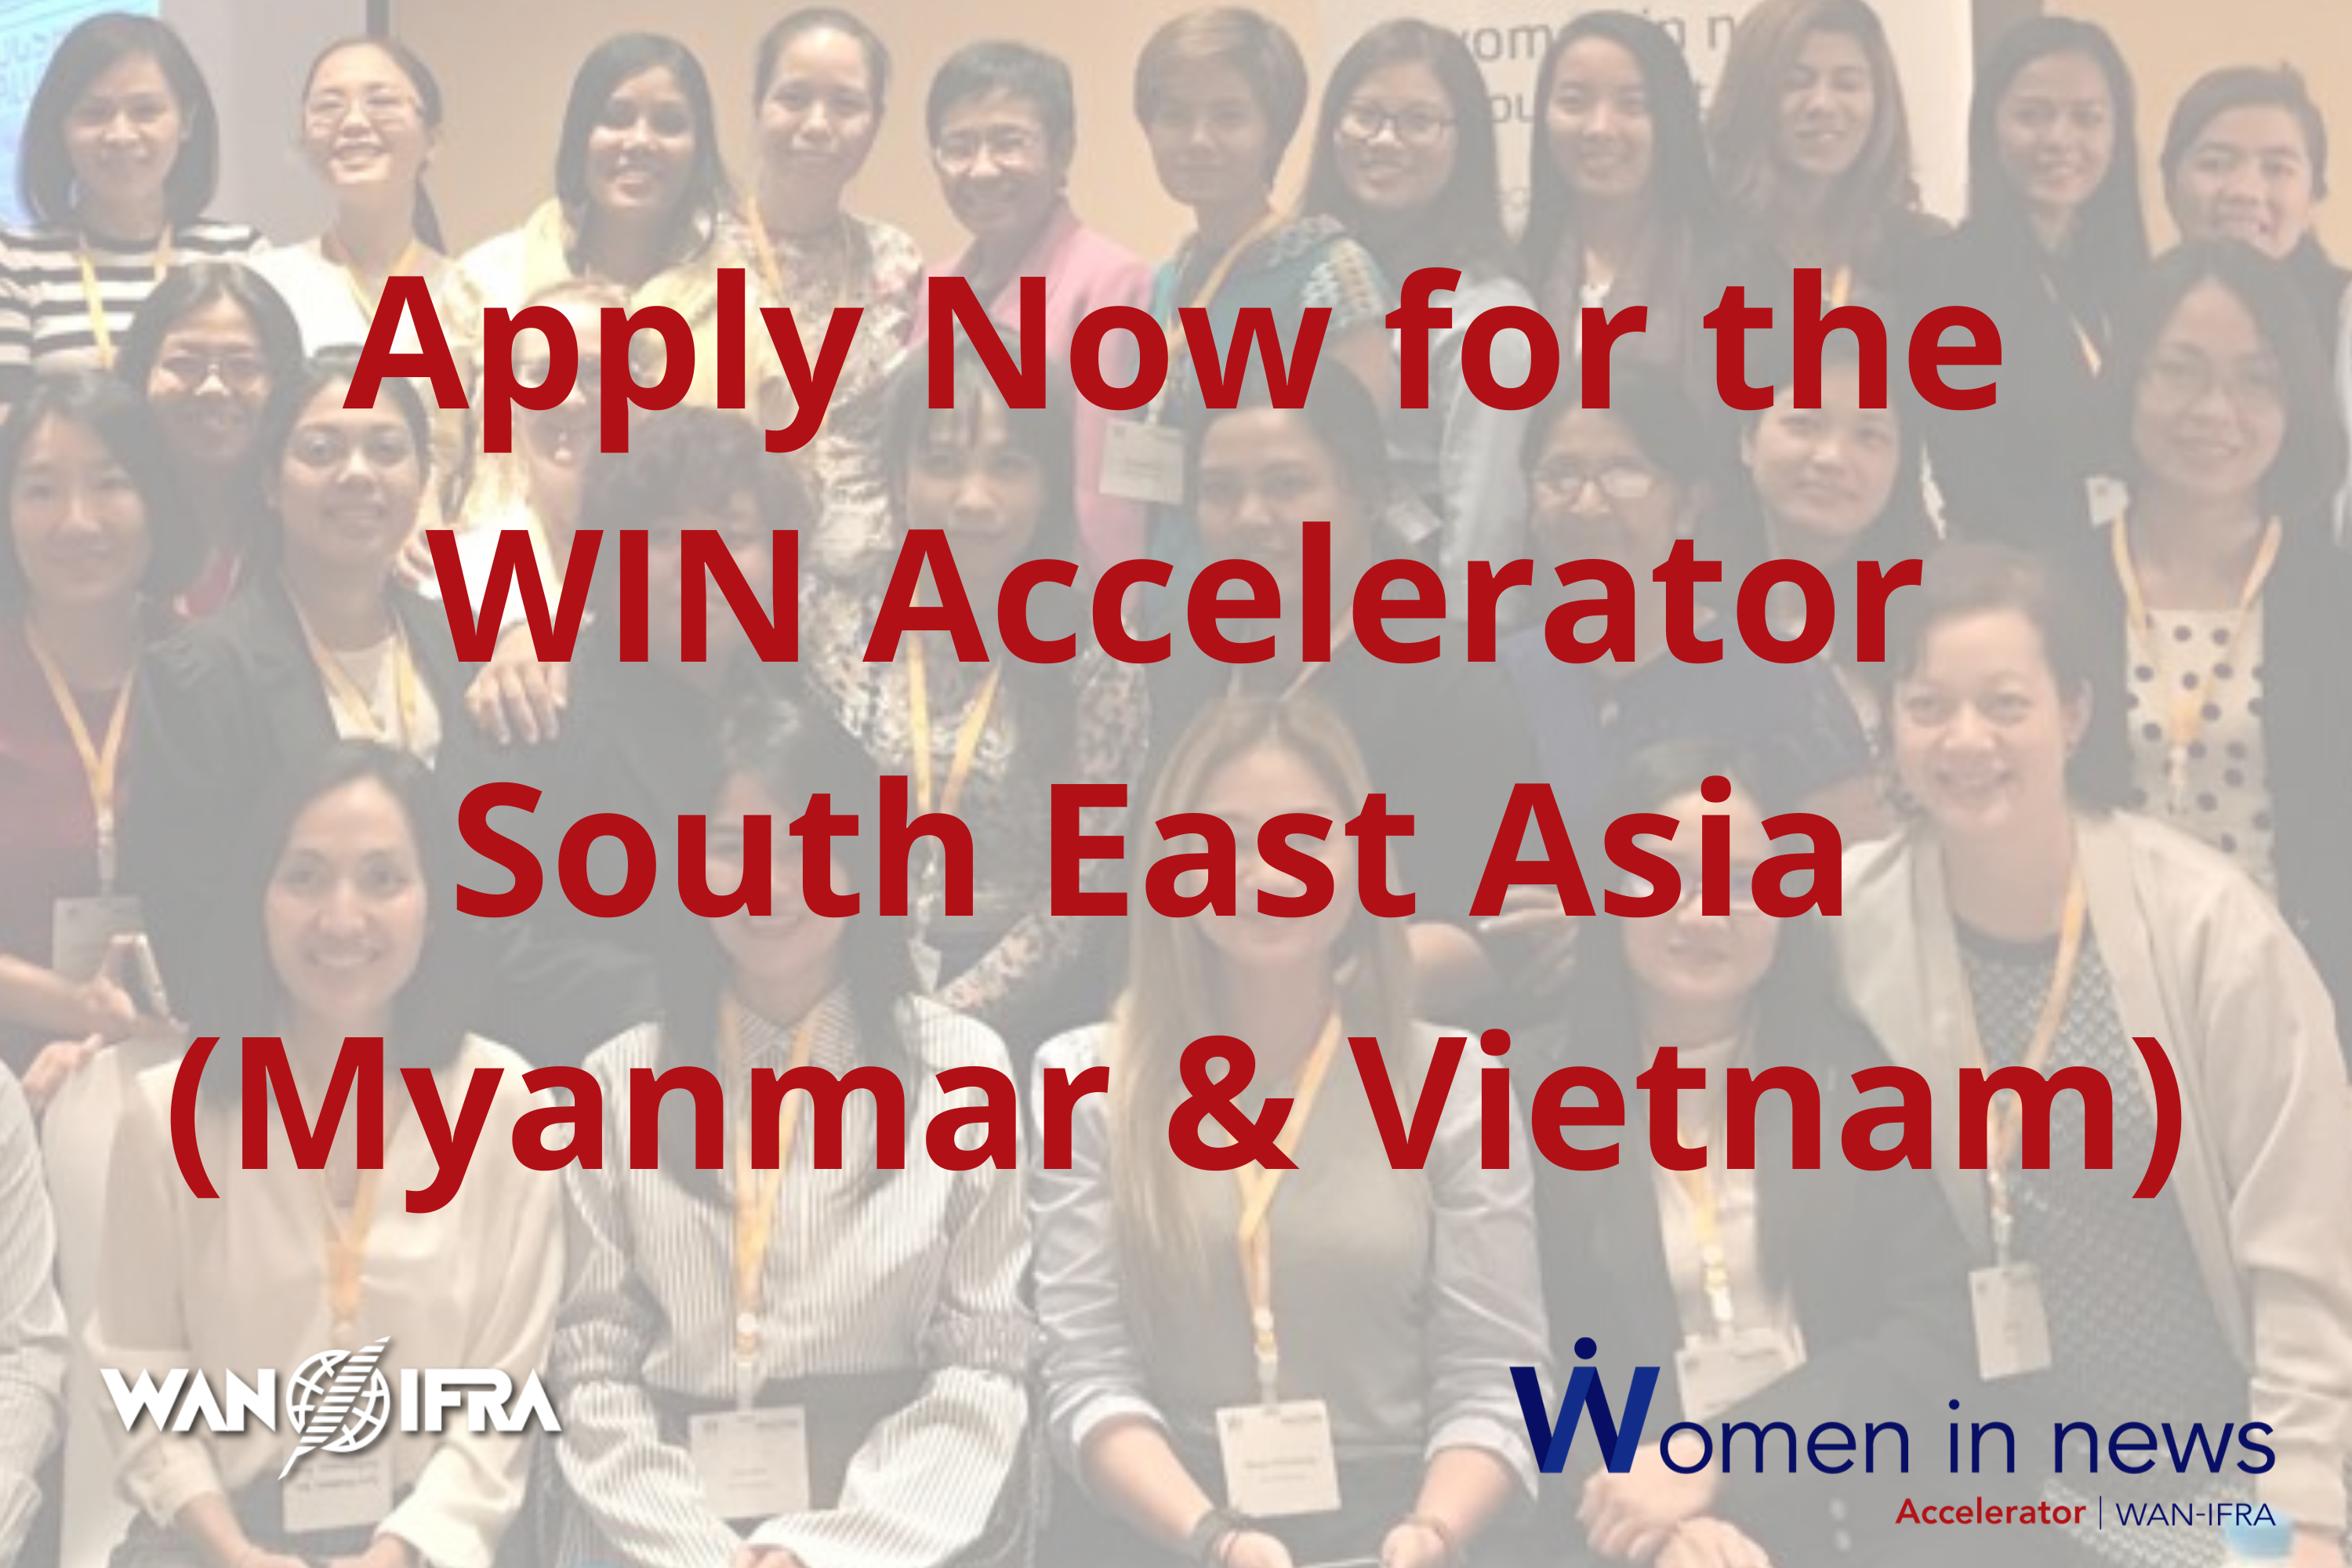 Now accepting applications for the 2020 WIN South East Asia Accelerator